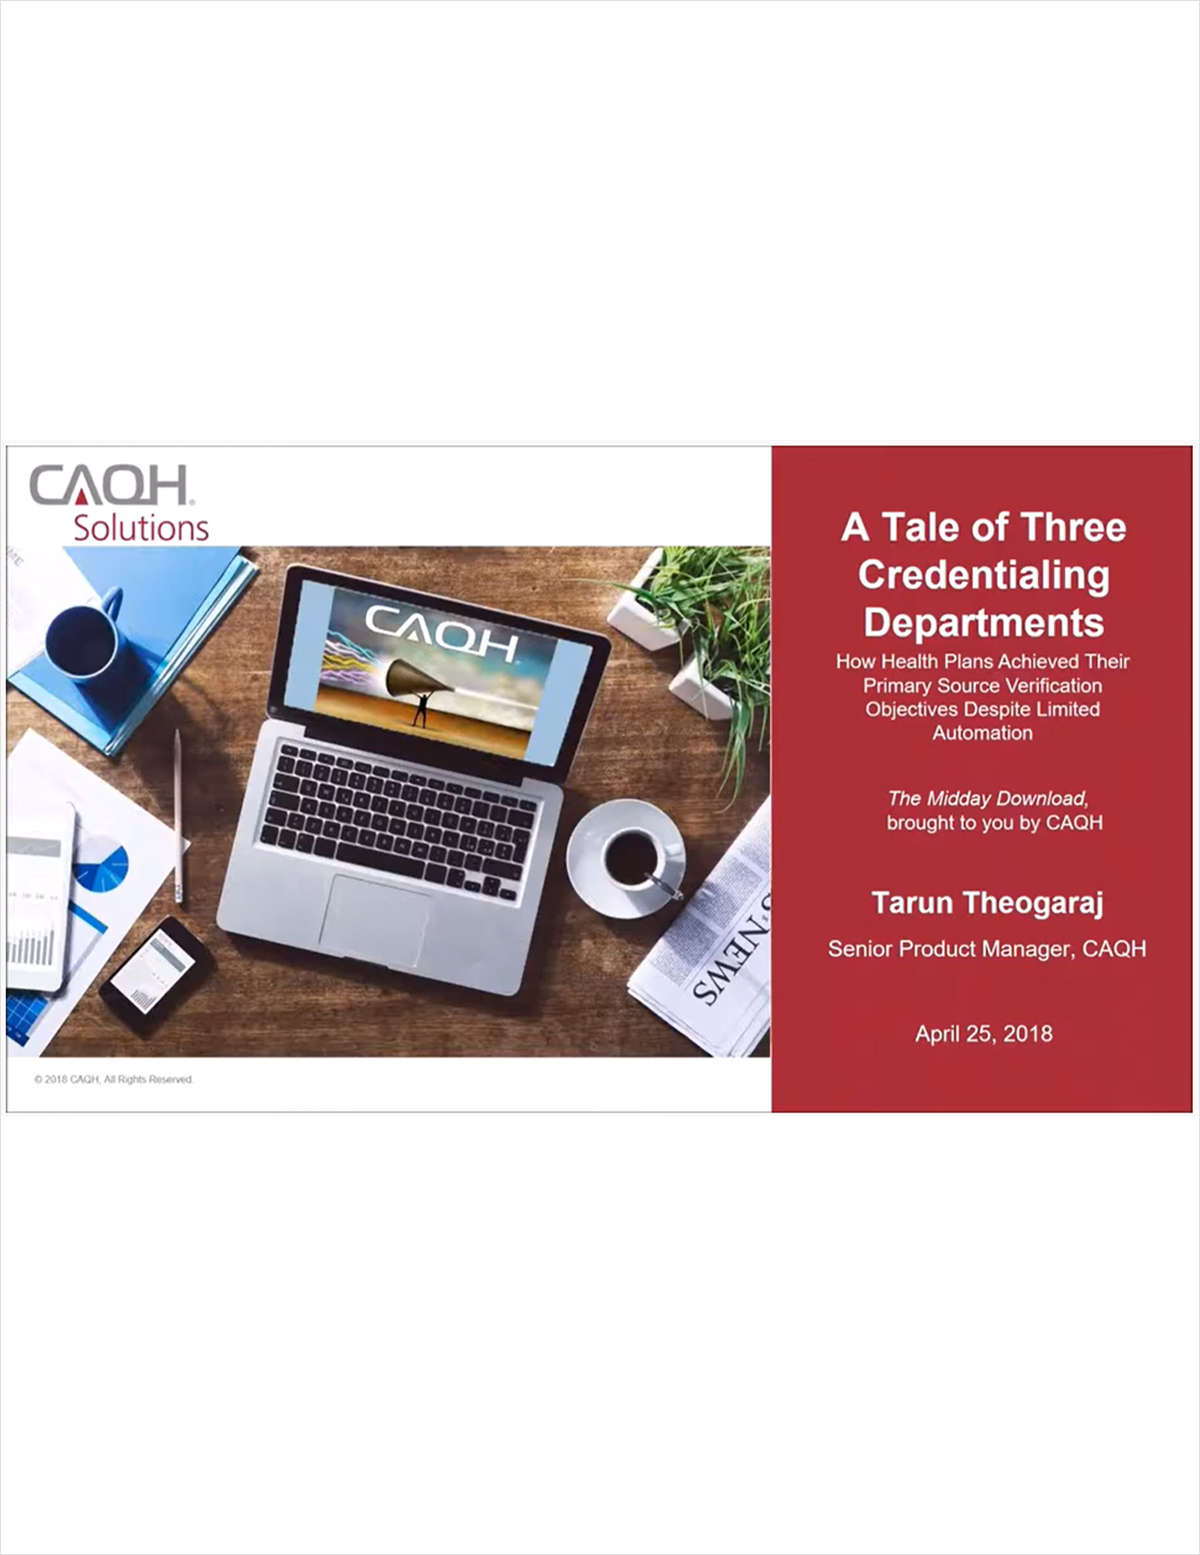 A Tale of Three Credentialing Departments